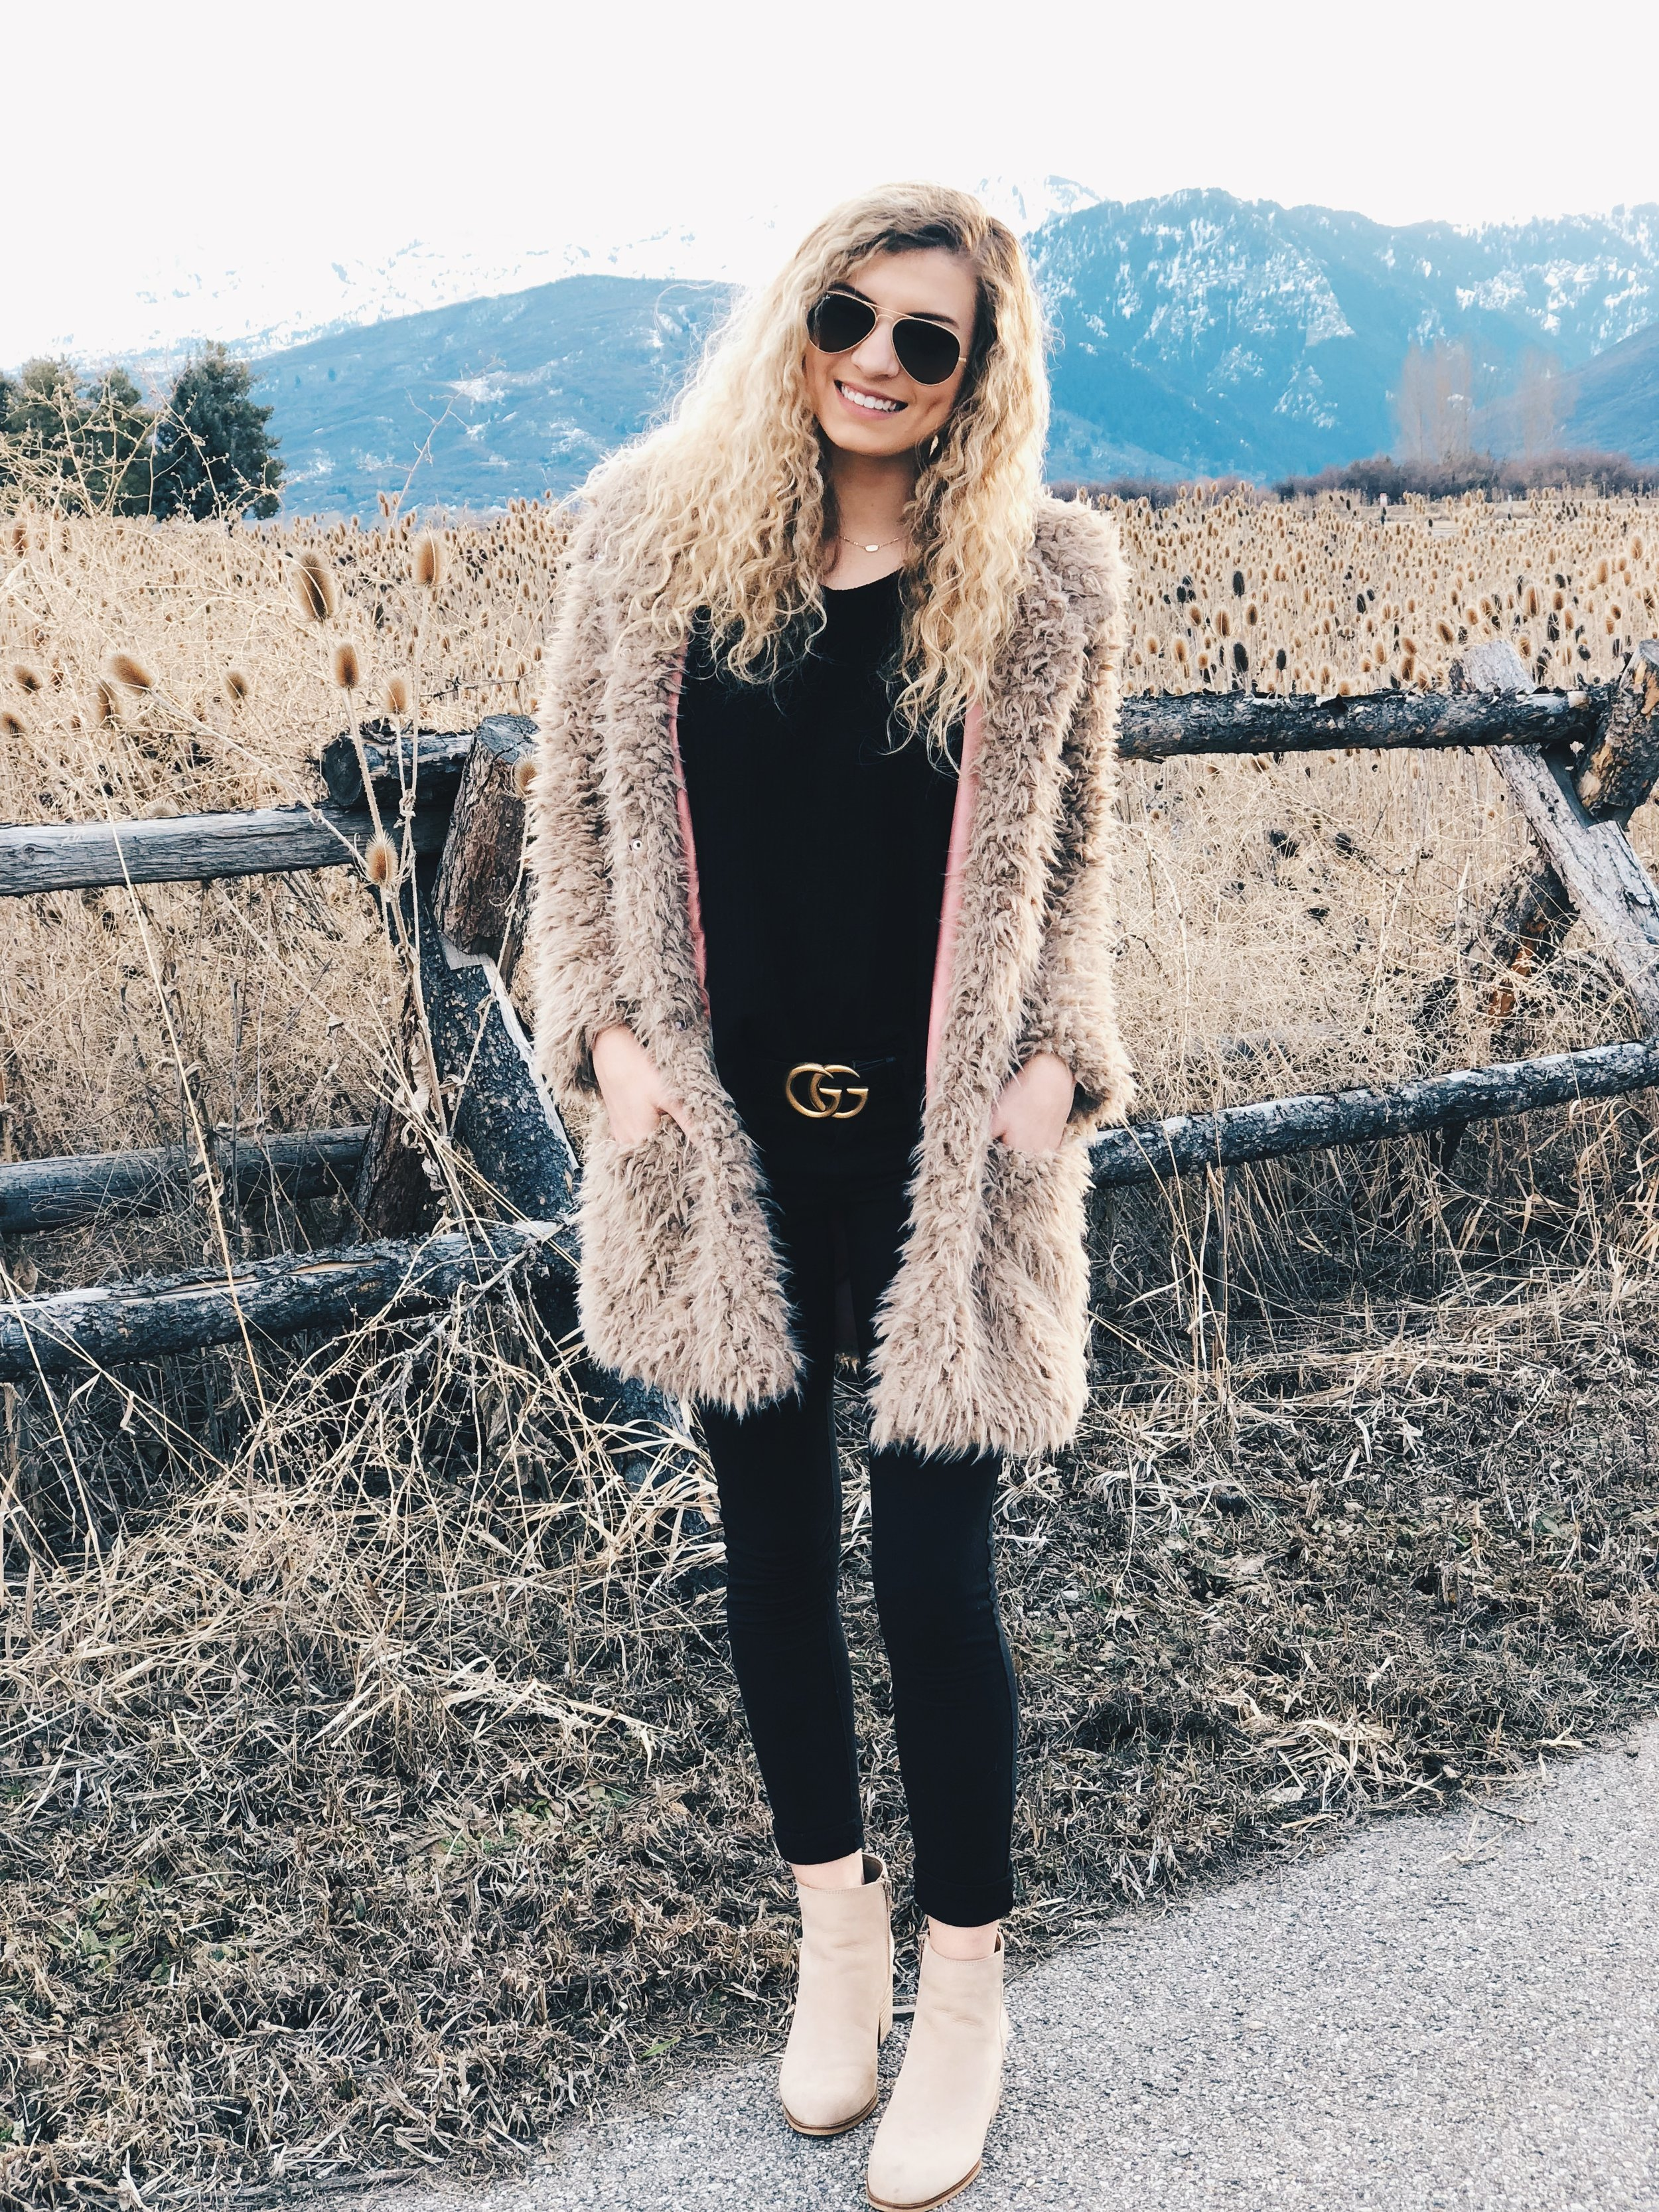 Booties:  These booties are available for $62.50 and you can shop them by clicking  HERE    Belt:  This belt is from Gucci and you can shop it by clicking  HERE    Coat:  This fur coat is on sale for $37.00 and you can shop it by clicking  HERE